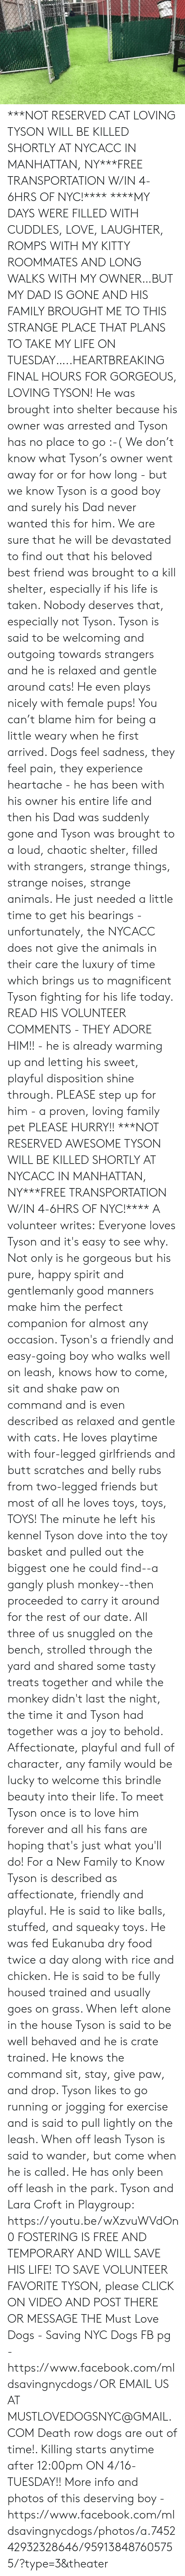 Being Alone, Animals, and Best Friend: ***NOT RESERVED CAT LOVING TYSON WILL BE KILLED SHORTLY AT NYCACC IN MANHATTAN, NY***FREE TRANSPORTATION W/IN 4-6HRS OF NYC!****  ****MY DAYS WERE FILLED WITH CUDDLES, LOVE, LAUGHTER, ROMPS WITH MY KITTY ROOMMATES AND LONG WALKS WITH MY OWNER…BUT MY DAD IS GONE AND HIS FAMILY BROUGHT ME TO THIS STRANGE PLACE THAT PLANS TO TAKE MY LIFE ON TUESDAY…..HEARTBREAKING FINAL HOURS FOR GORGEOUS, LOVING TYSON! He was brought into shelter because his owner was arrested and Tyson has no place to go :-(  We don't know what Tyson's owner went away for or for how long - but we know Tyson is a good boy and surely his Dad never wanted this for him.  We are sure that he will be devastated to find out that his beloved best friend was brought to a kill shelter, especially if his life is taken.  Nobody deserves that, especially not Tyson. Tyson is said to be welcoming and outgoing towards strangers and he is relaxed and gentle around cats! He even plays nicely with female pups!  You can't blame him for being a little weary when he first arrived.  Dogs feel sadness, they feel pain, they experience heartache - he has been with his owner his entire life and then his Dad was suddenly gone and Tyson was brought to a loud, chaotic shelter, filled with strangers, strange things, strange noises, strange animals.  He just needed a little time to get his bearings - unfortunately, the NYCACC does not give the animals in their care the luxury of time which brings us to magnificent Tyson fighting for his life today. READ HIS VOLUNTEER COMMENTS - THEY ADORE HIM!! - he is already warming up and letting his sweet, playful disposition shine through.  PLEASE step up for him - a proven, loving family pet PLEASE HURRY!! ***NOT RESERVED AWESOME TYSON WILL BE KILLED SHORTLY AT NYCACC IN MANHATTAN, NY***FREE TRANSPORTATION W/IN 4-6HRS OF NYC!****  A volunteer writes: Everyone loves Tyson and it's easy to see why. Not only is he gorgeous but his pure, happy spirit and gen